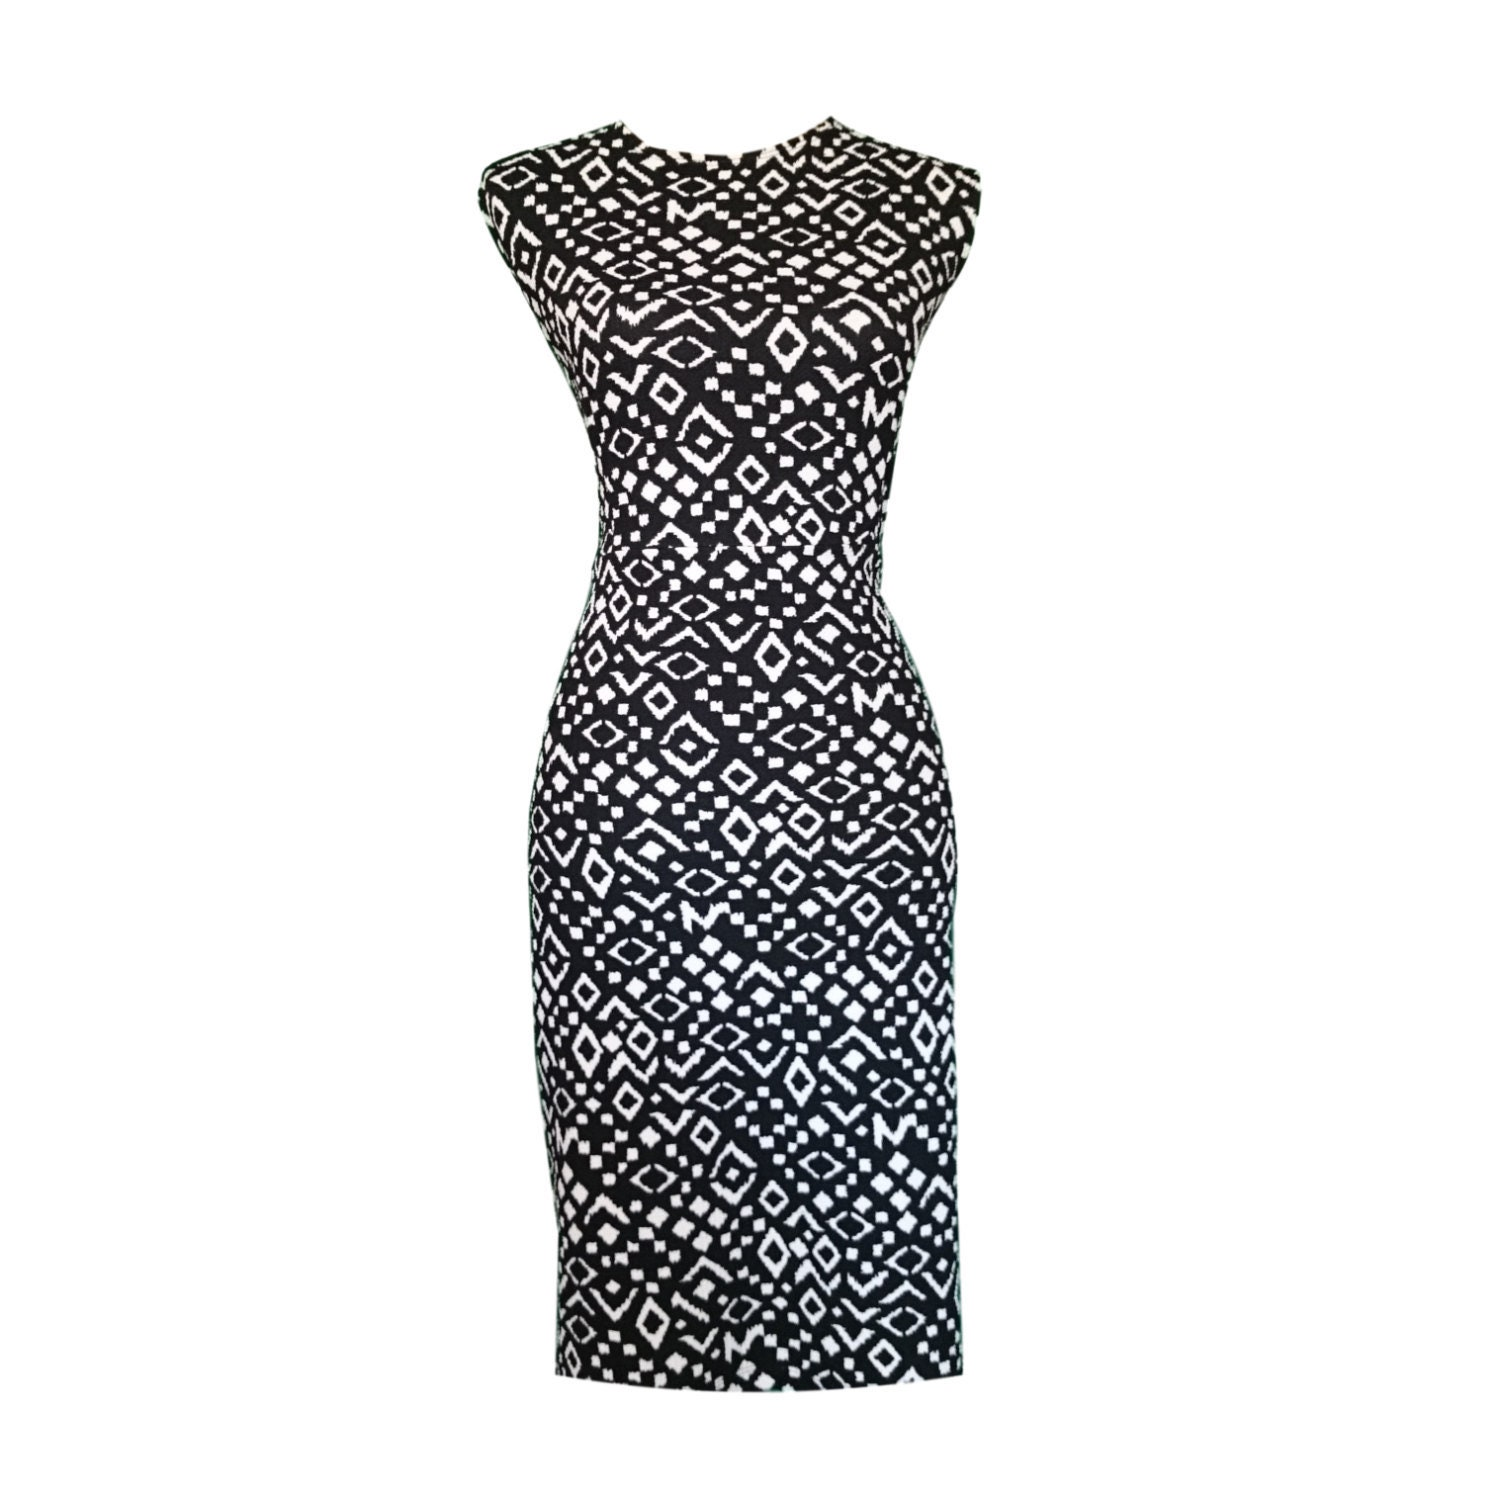 Kuwaha Ethnic Textured Knit Sheath Pencil Dress, Black & White